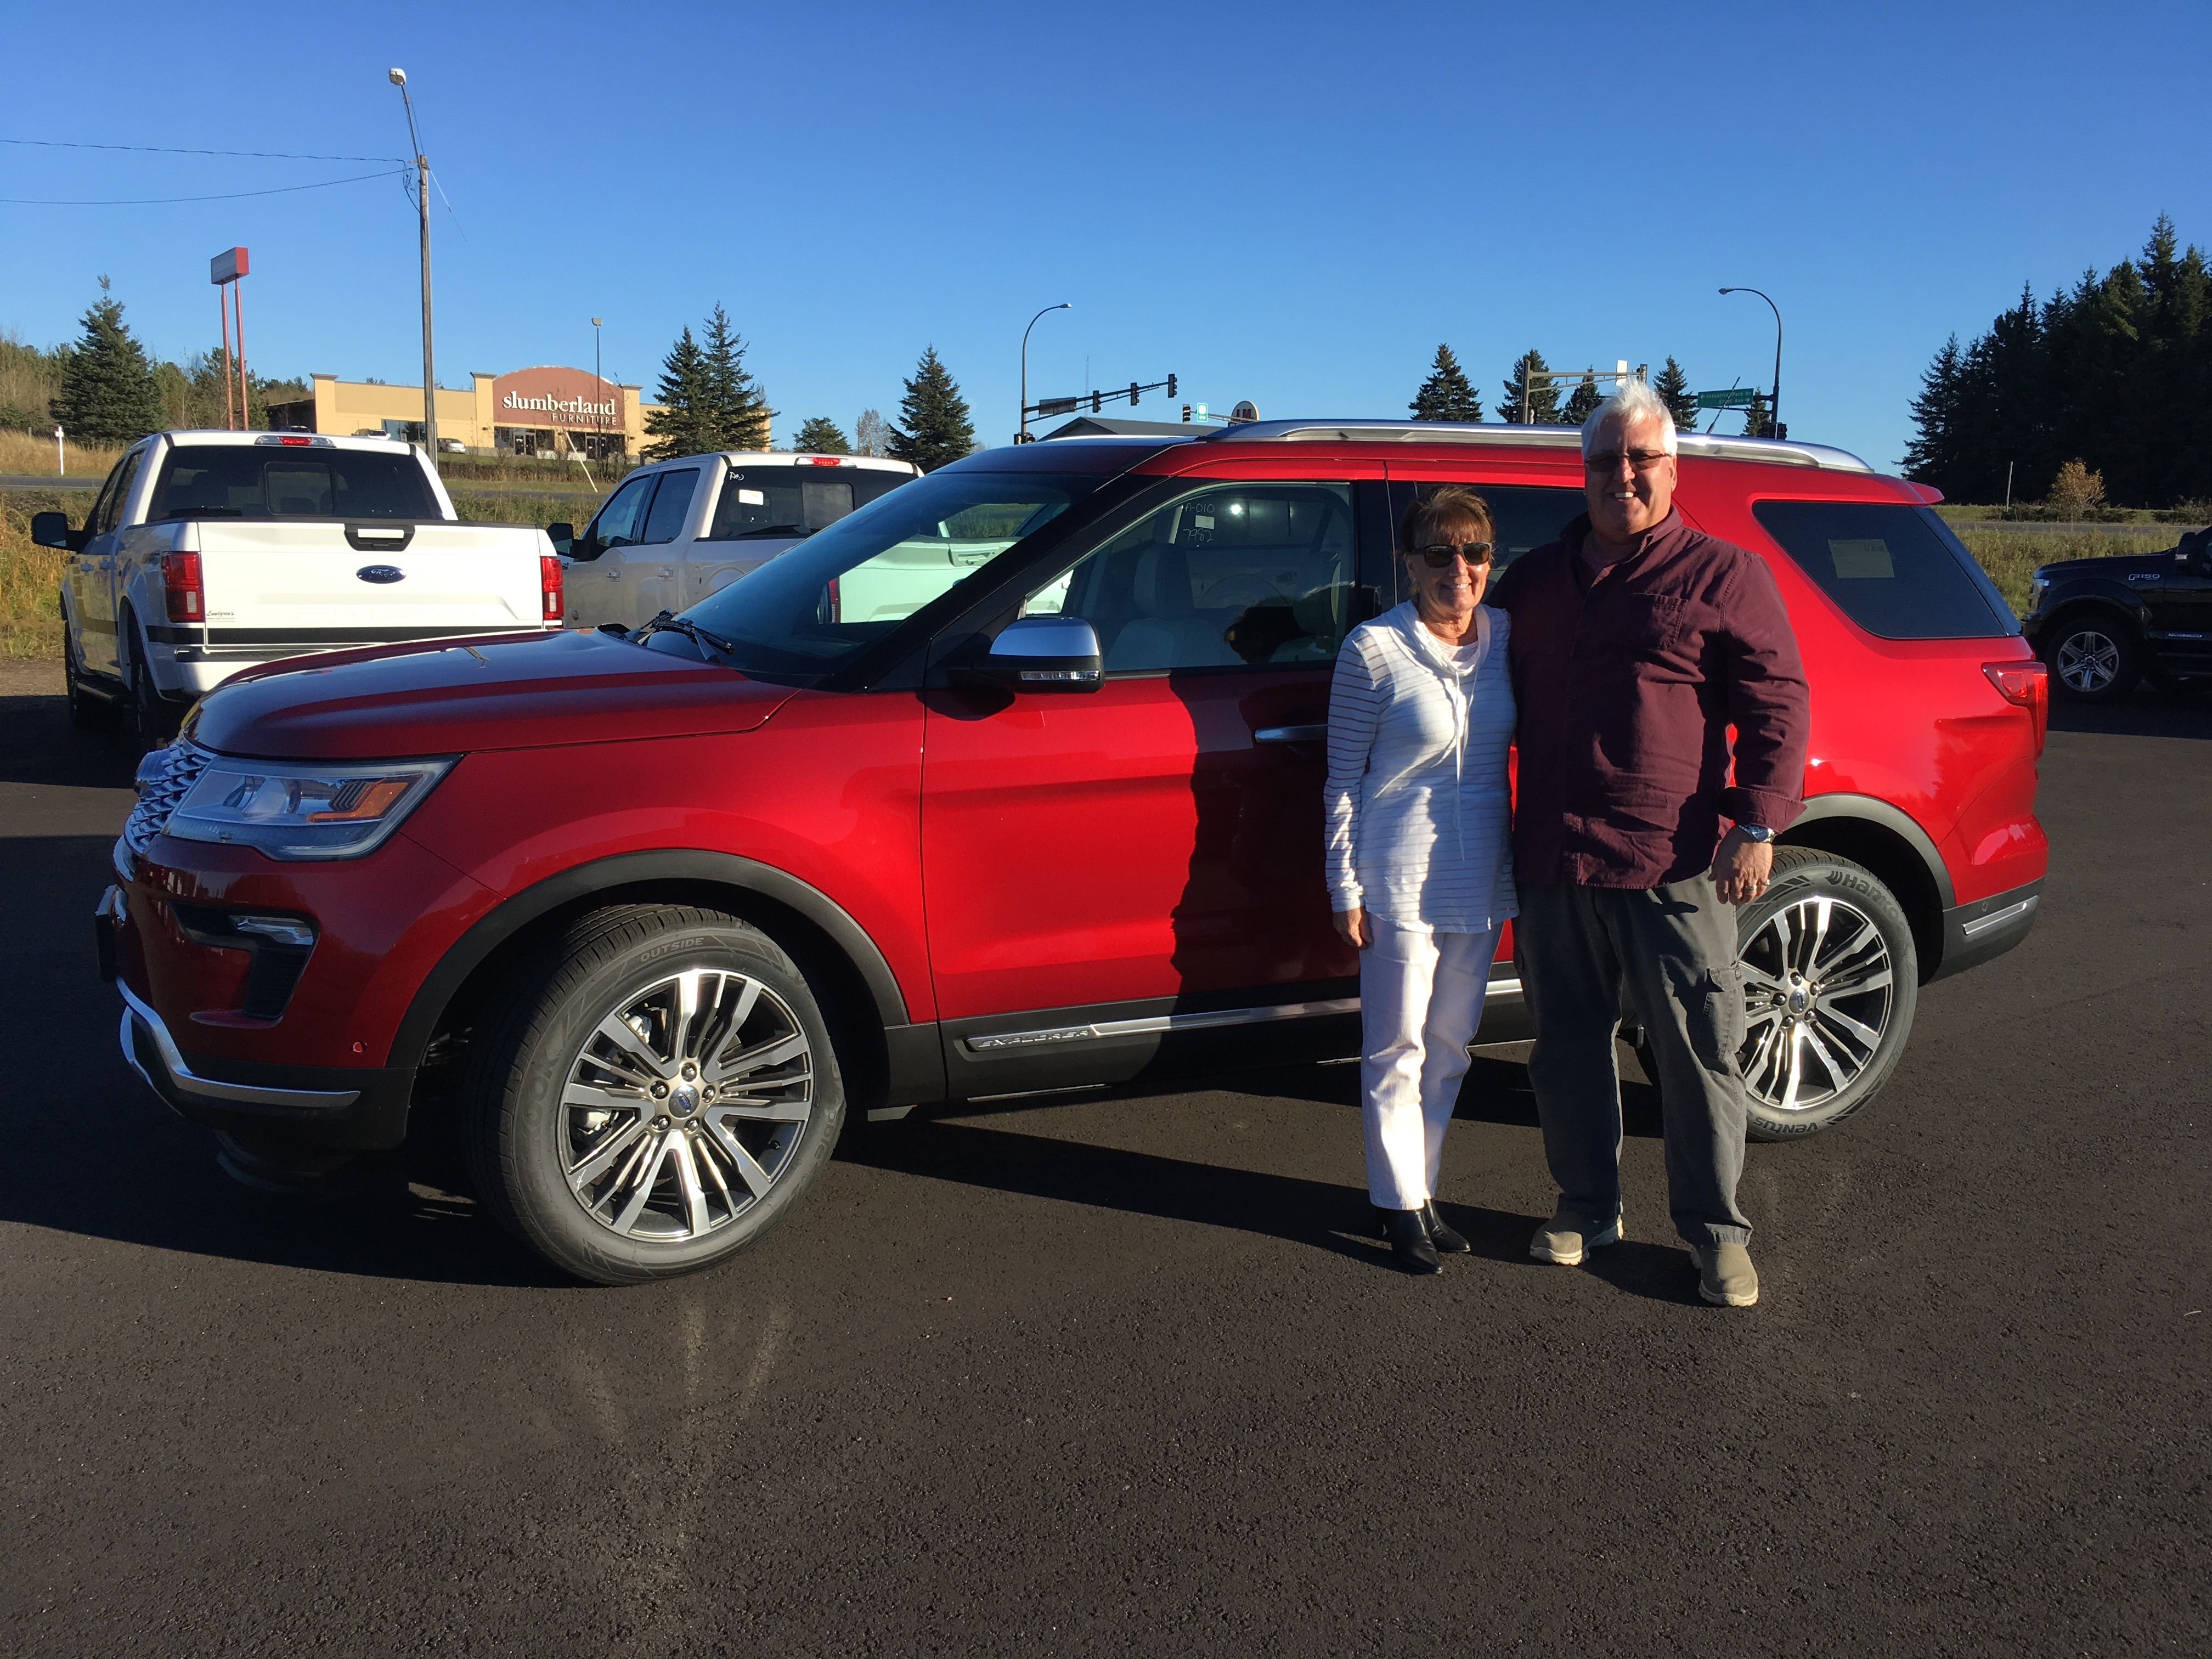 Lundgren S And Brad Hejda Thank Returning Customers Susan And Kent